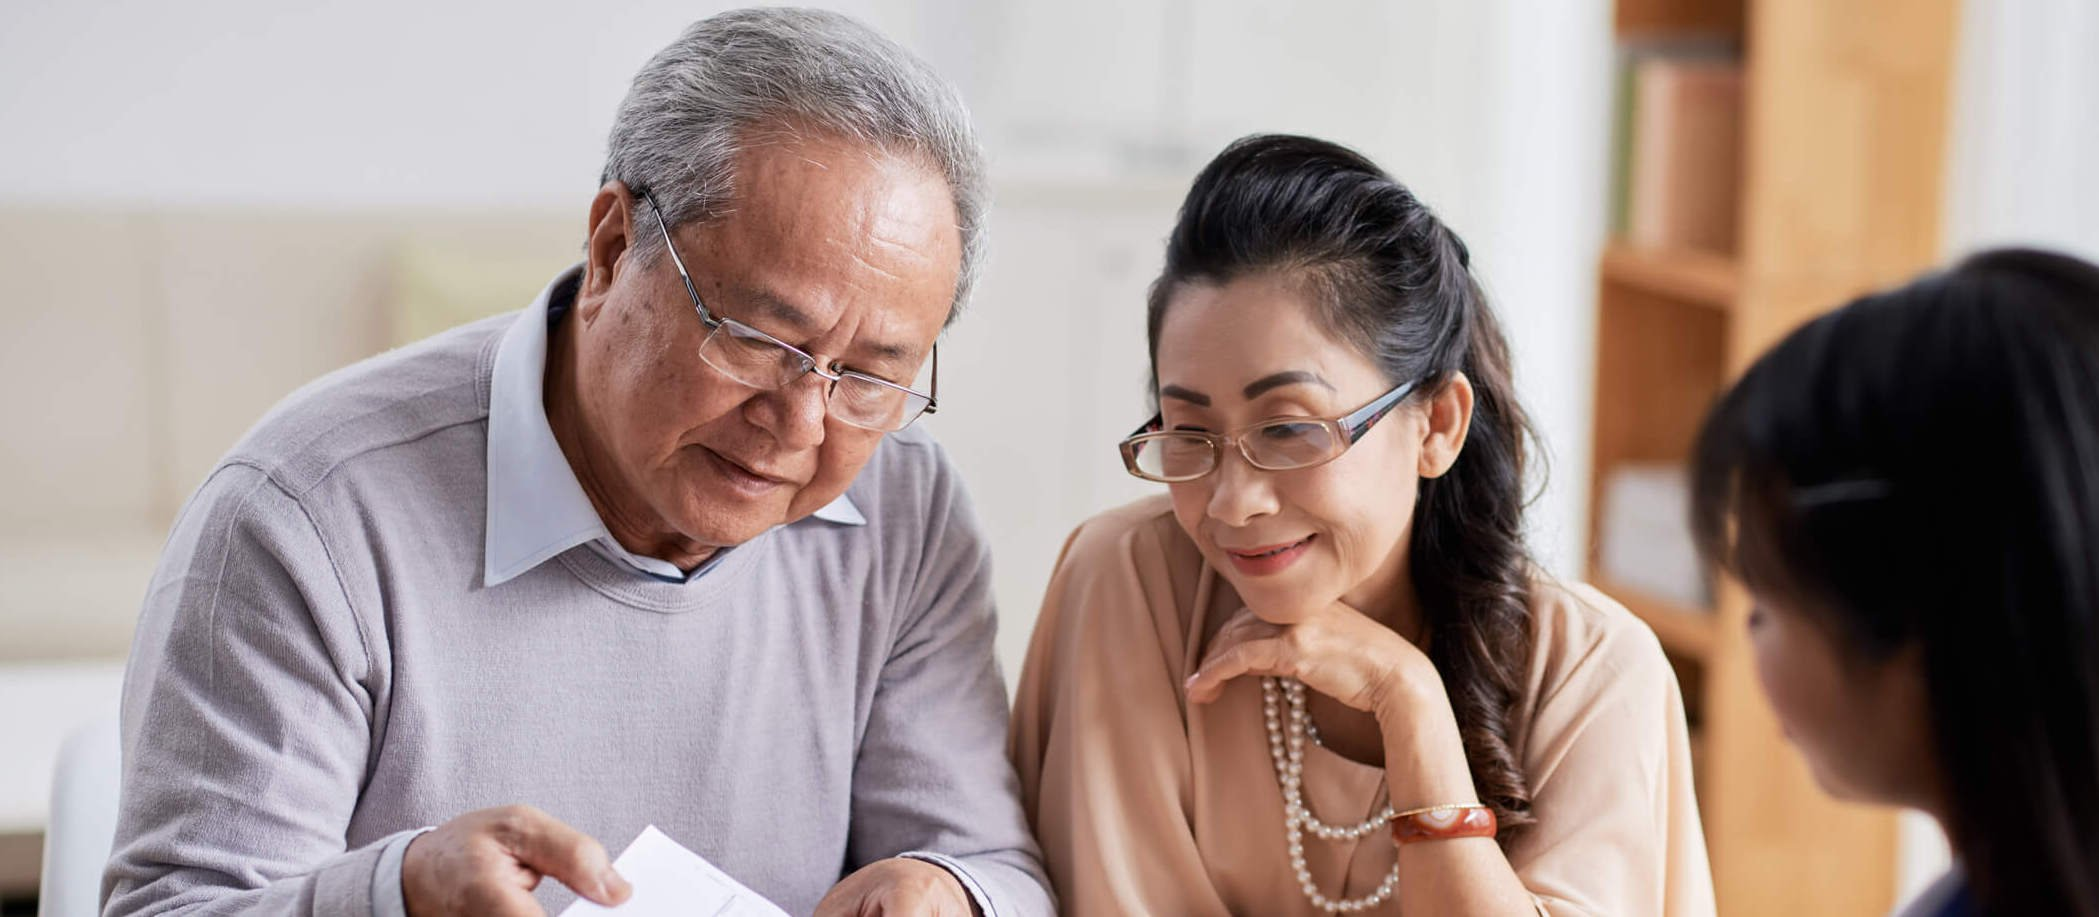 3 Common Questions Financial Advisors Get Asked About Social Security Planning